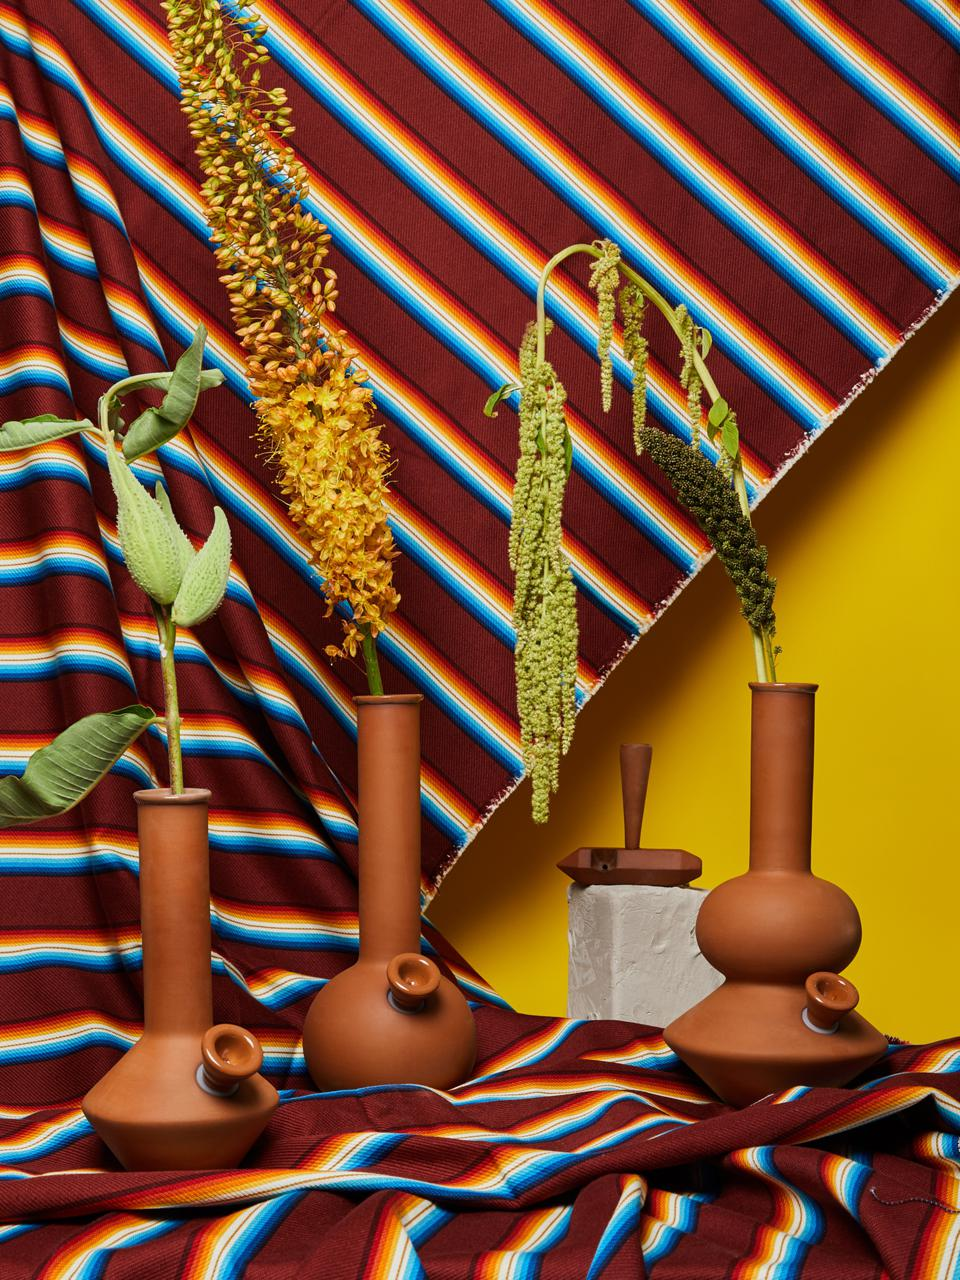 A collection of 'stonerware' bongs from Summerland with botanical props against a striped background.